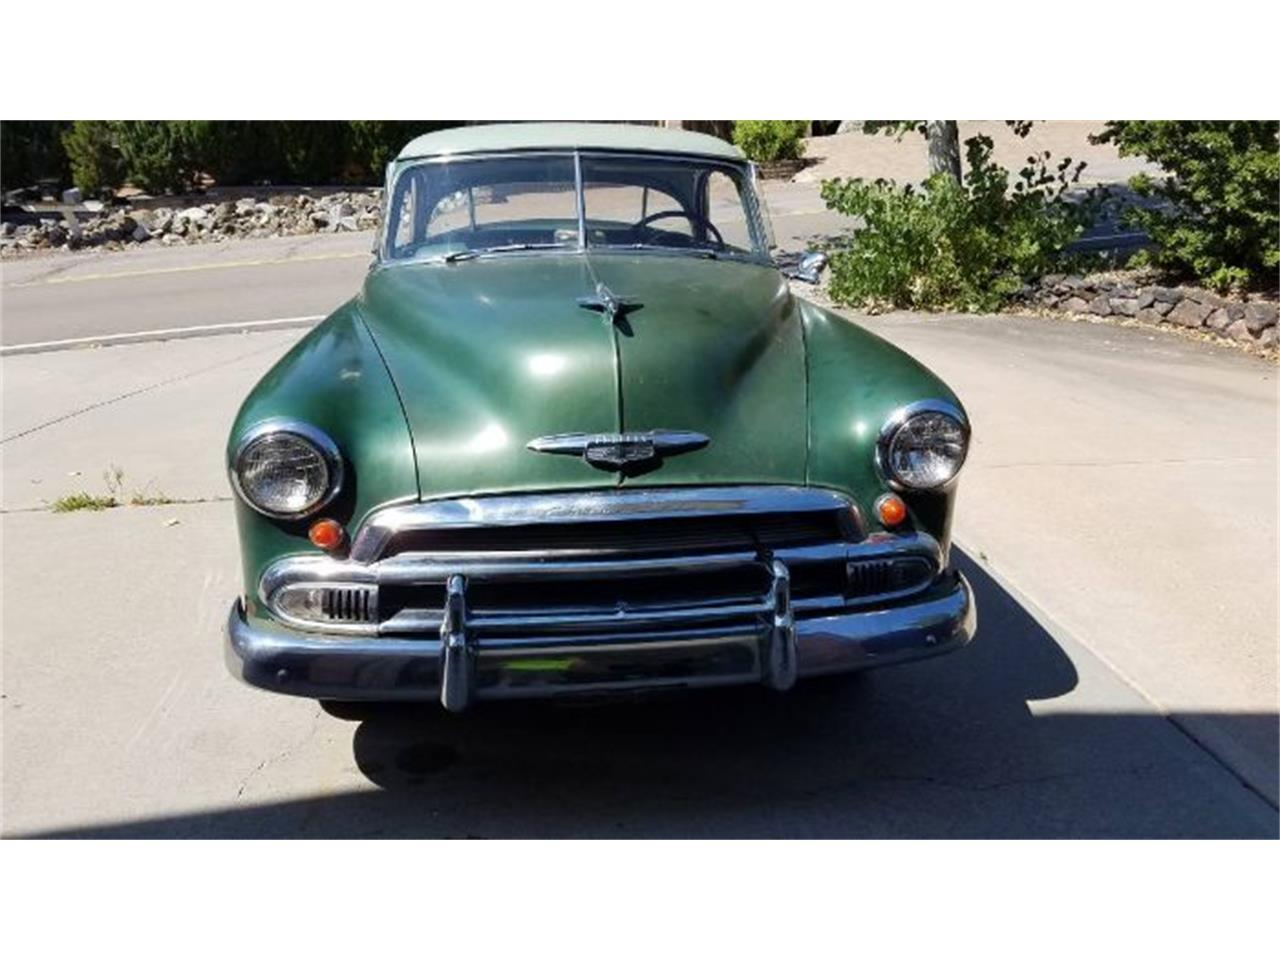 Large Picture of '51 Chevrolet Bel Air located in Cadillac Michigan - $16,295.00 Offered by Classic Car Deals - R32Z